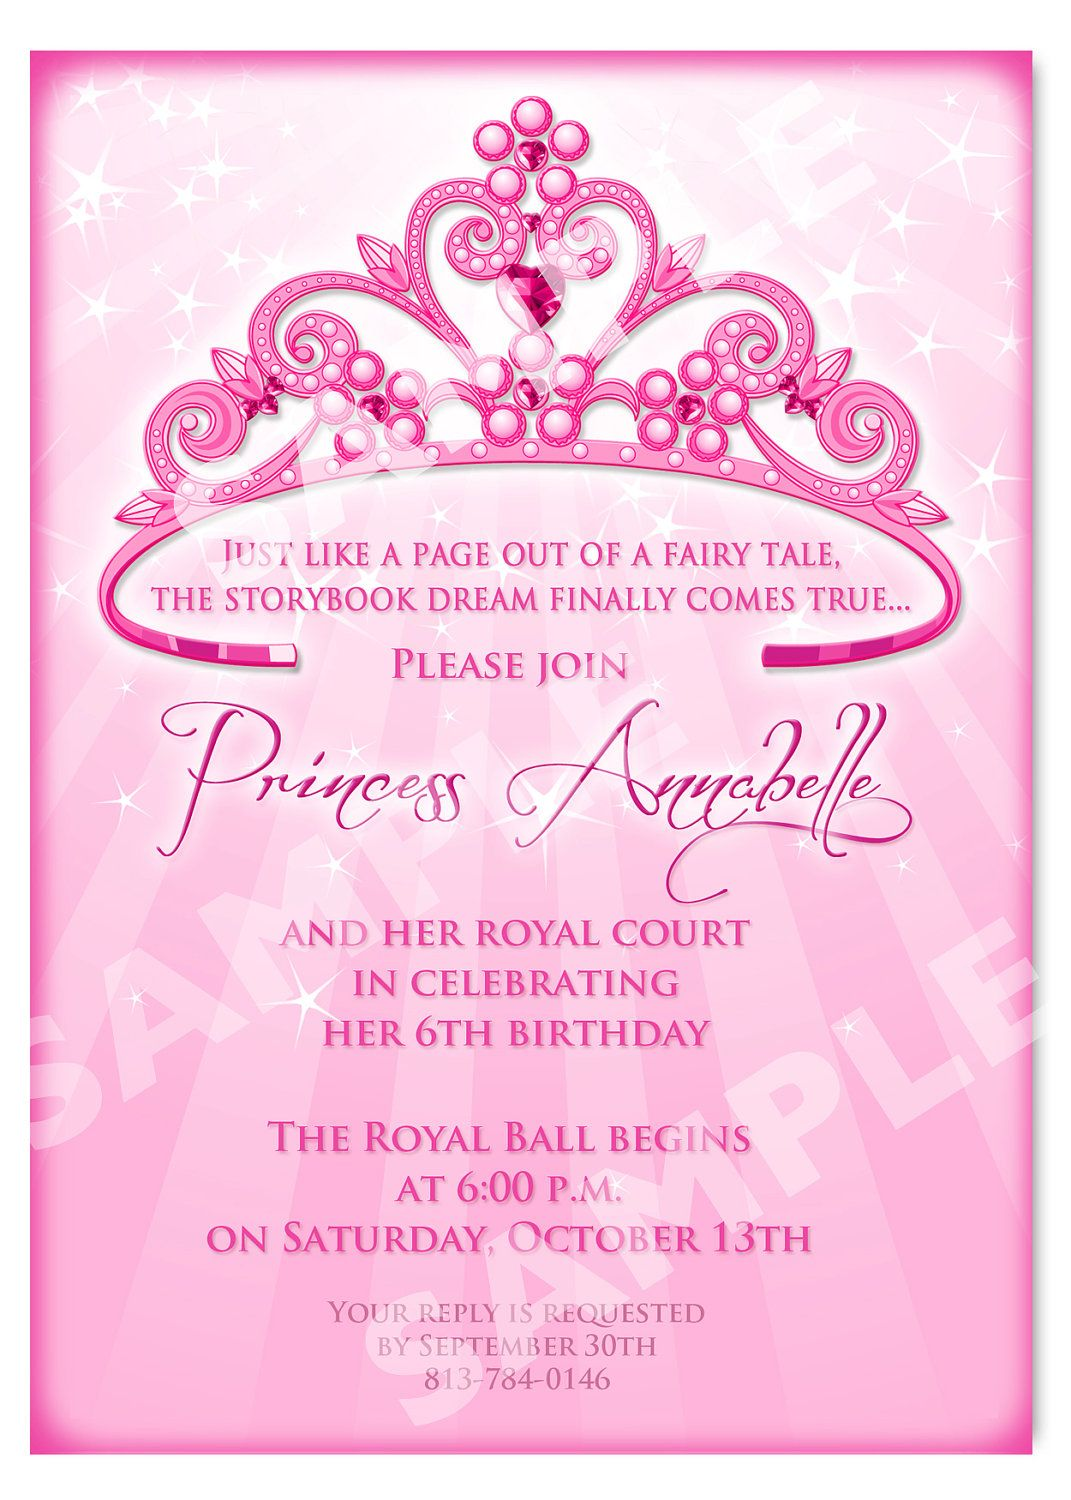 Free Printable Princess Birthday Party Invitations – Invitations Birthday Party Free Printable